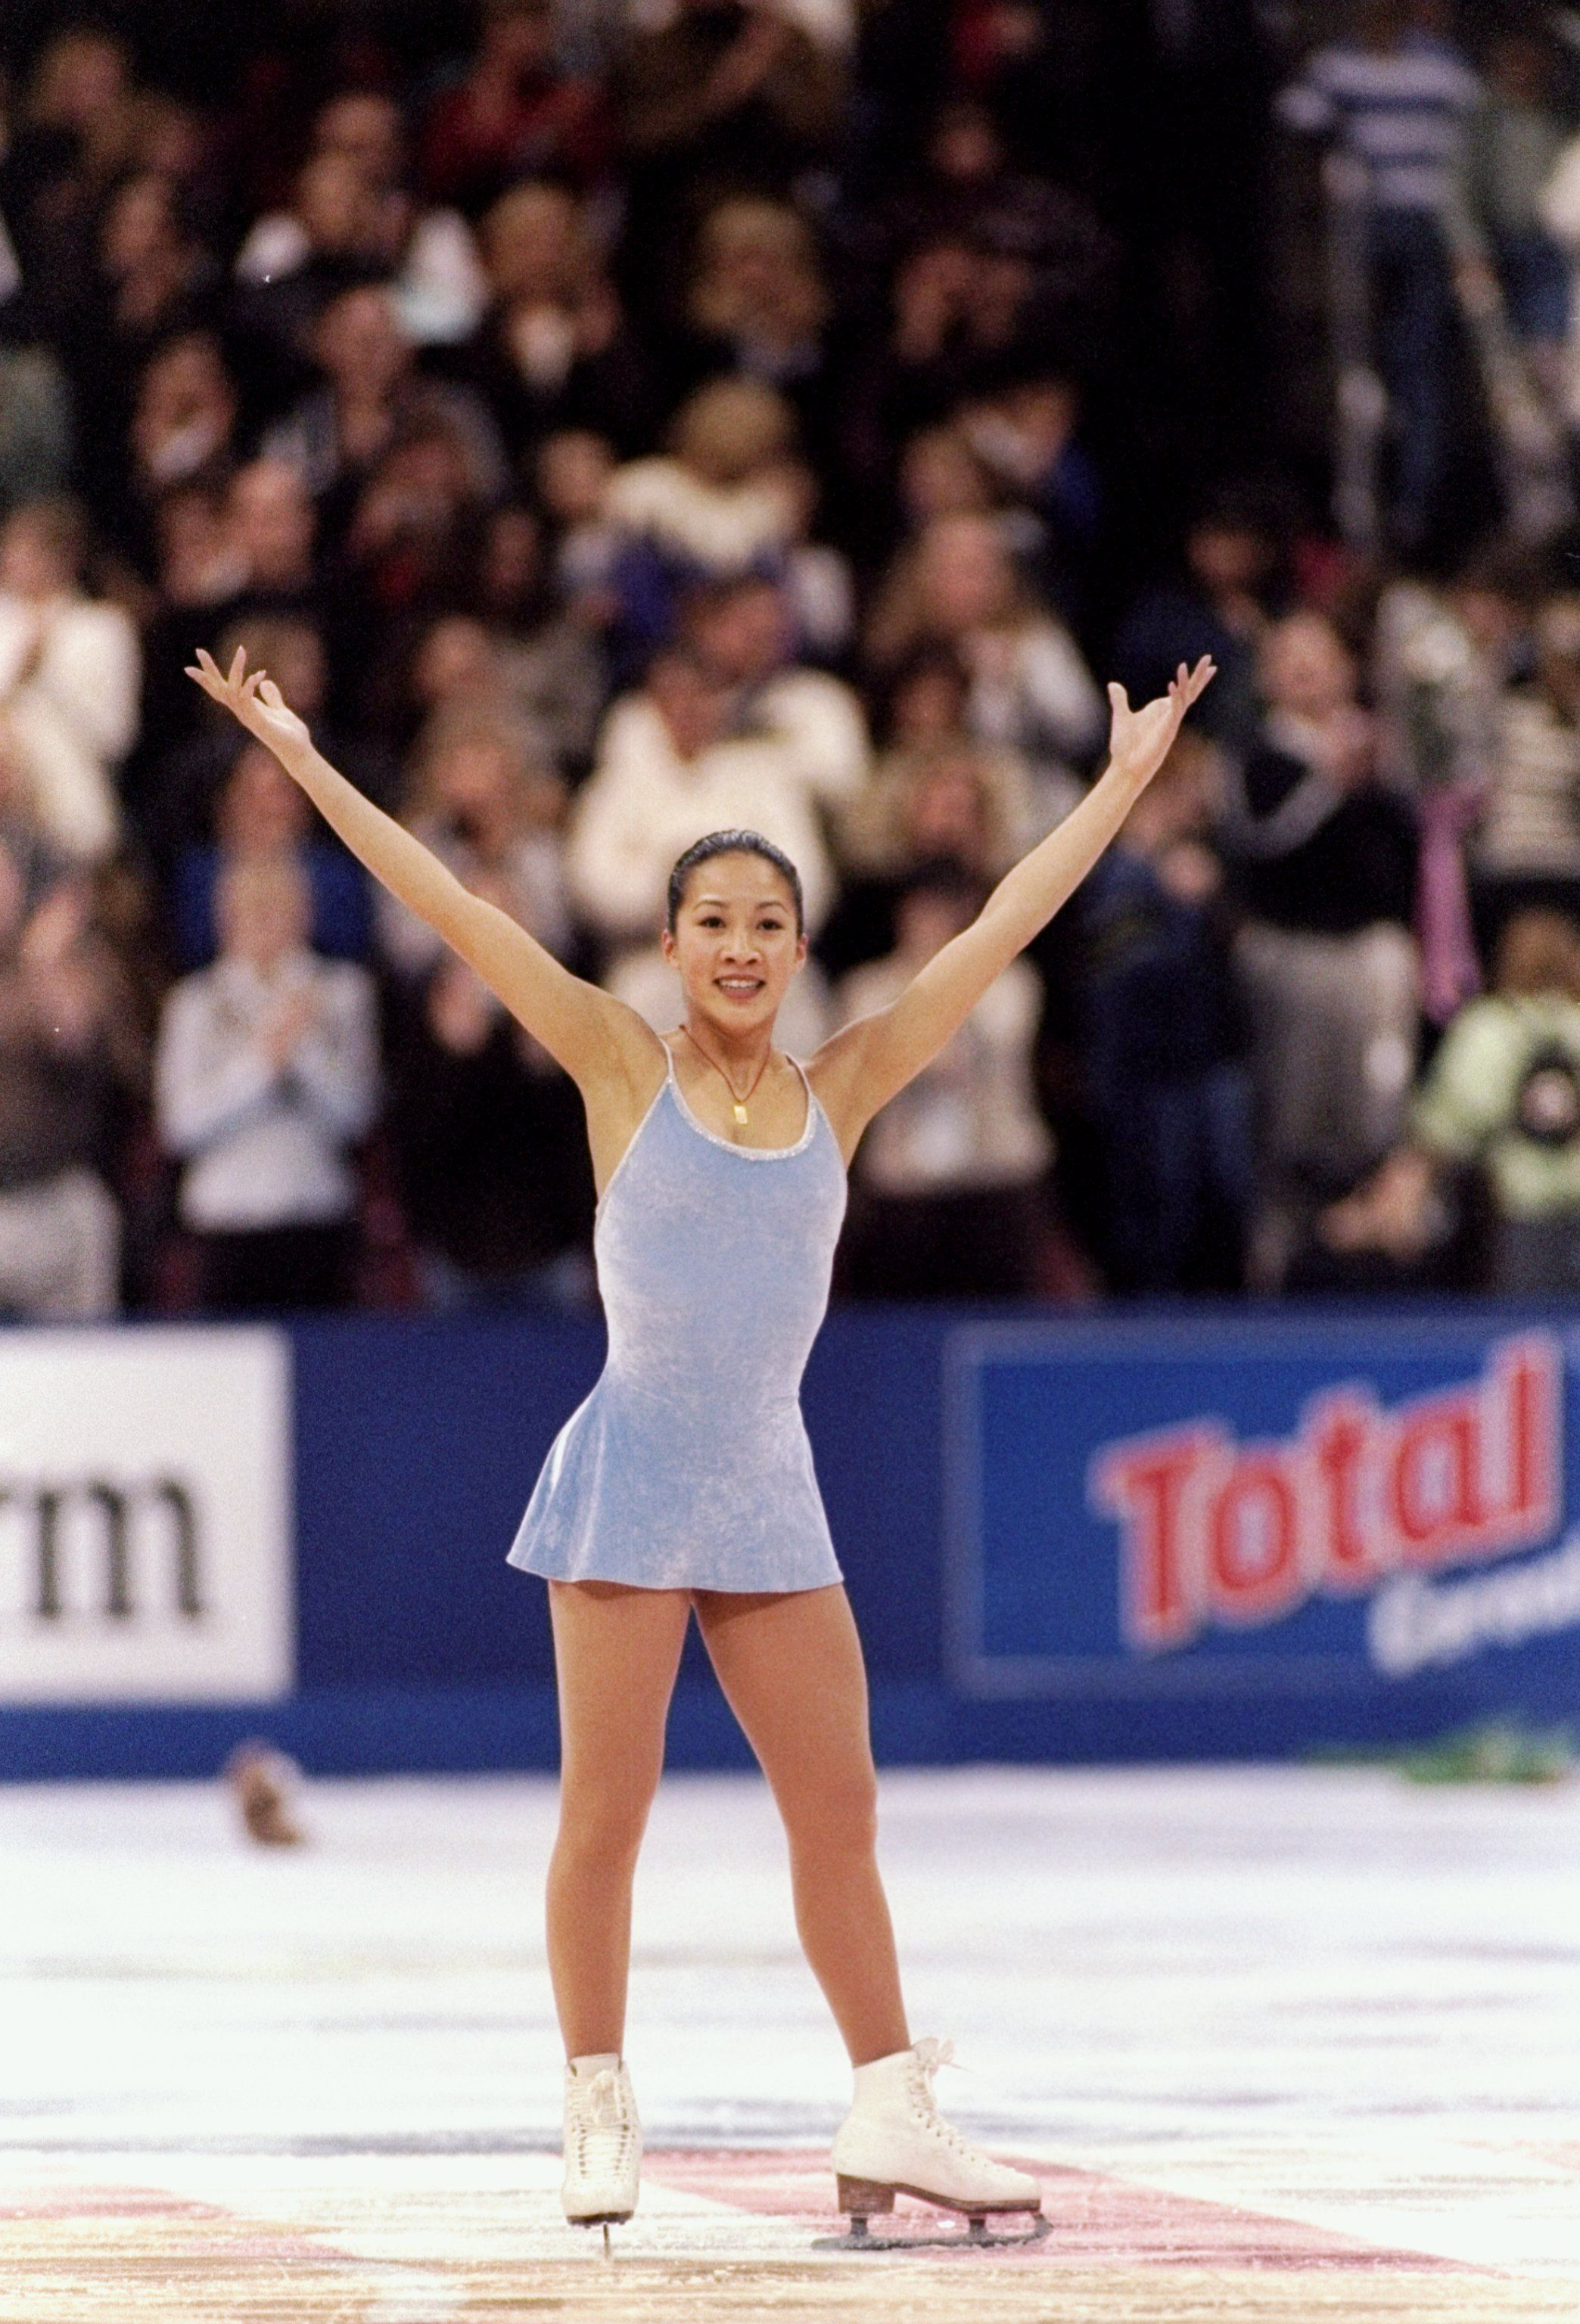 Michelle Kwan is one of the richest female athletes in the world.